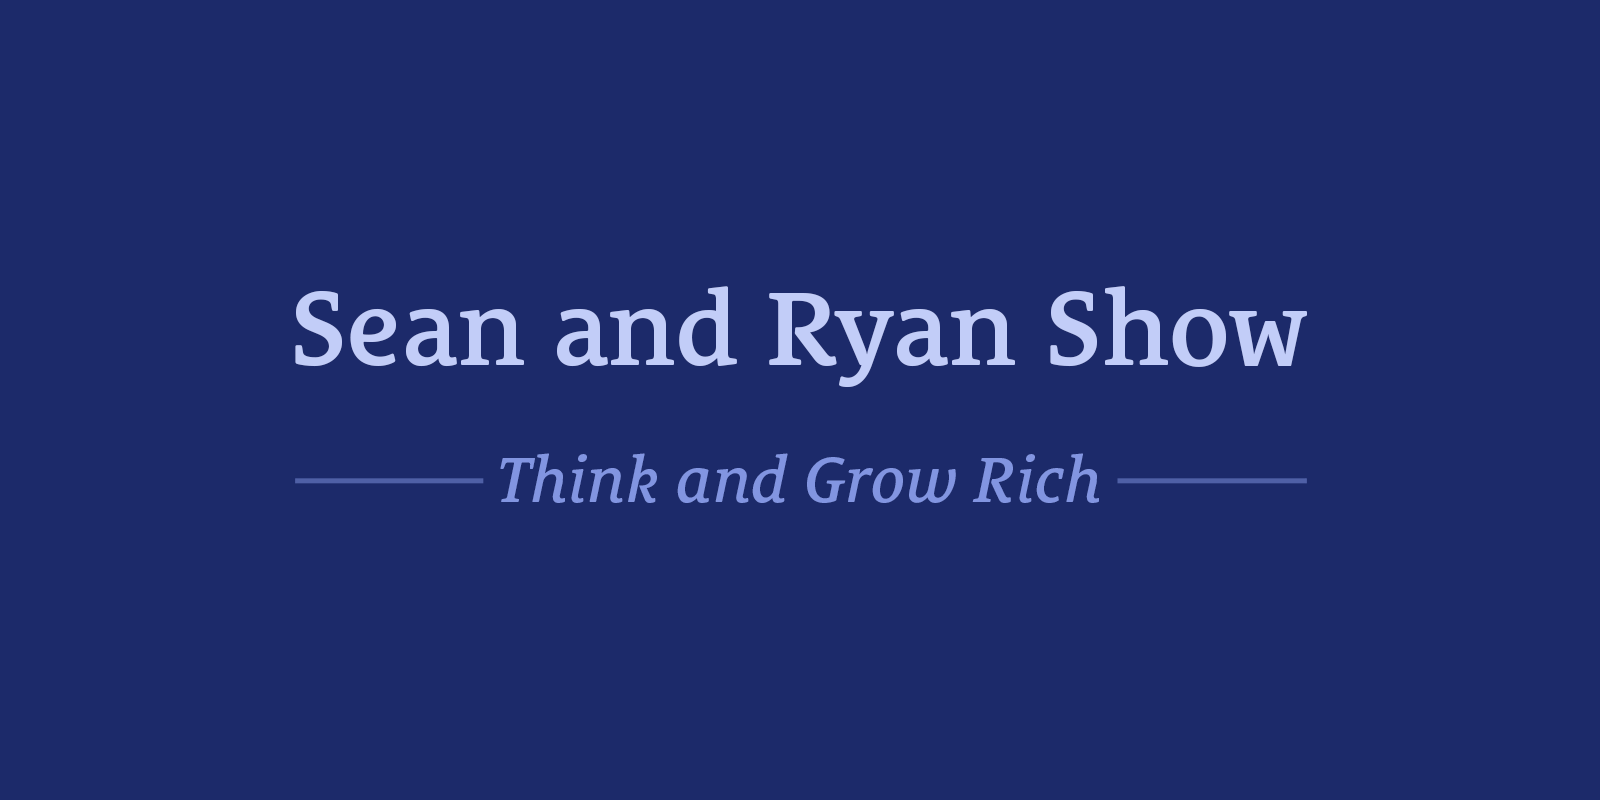 Sean and Ryan Show: Think and Grow Rich Book Club